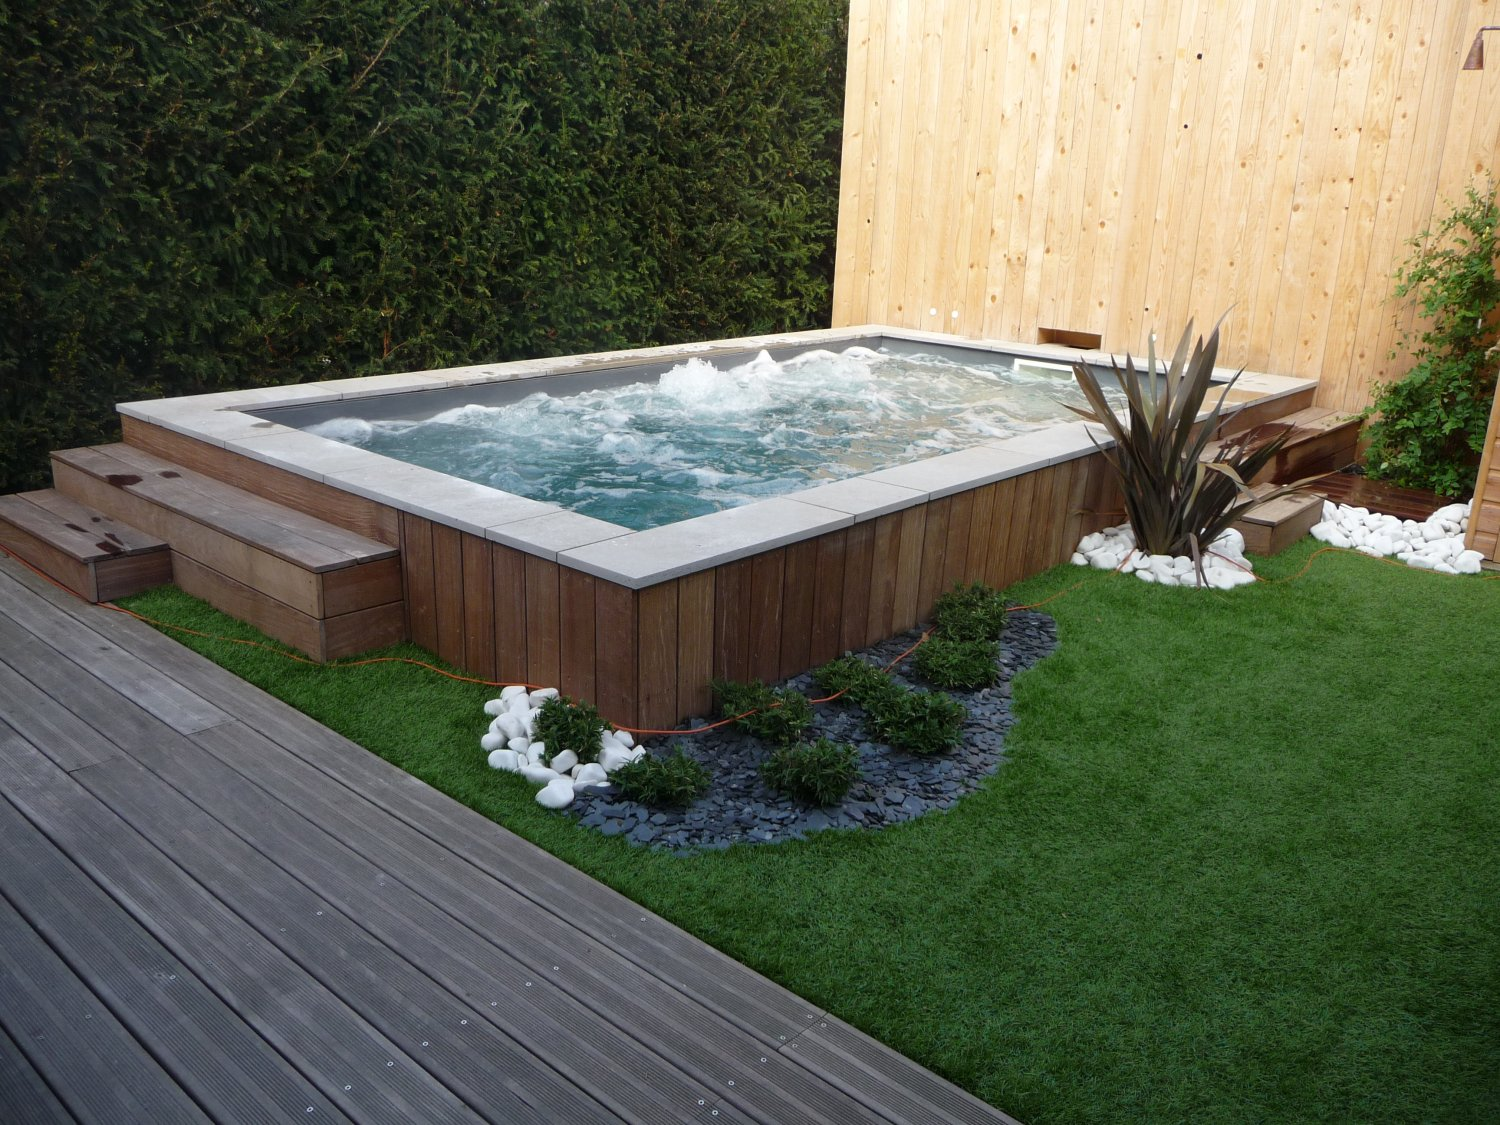 Am nager son jardin ext rieur faire une terrasse en bois for Amenagement de jardin